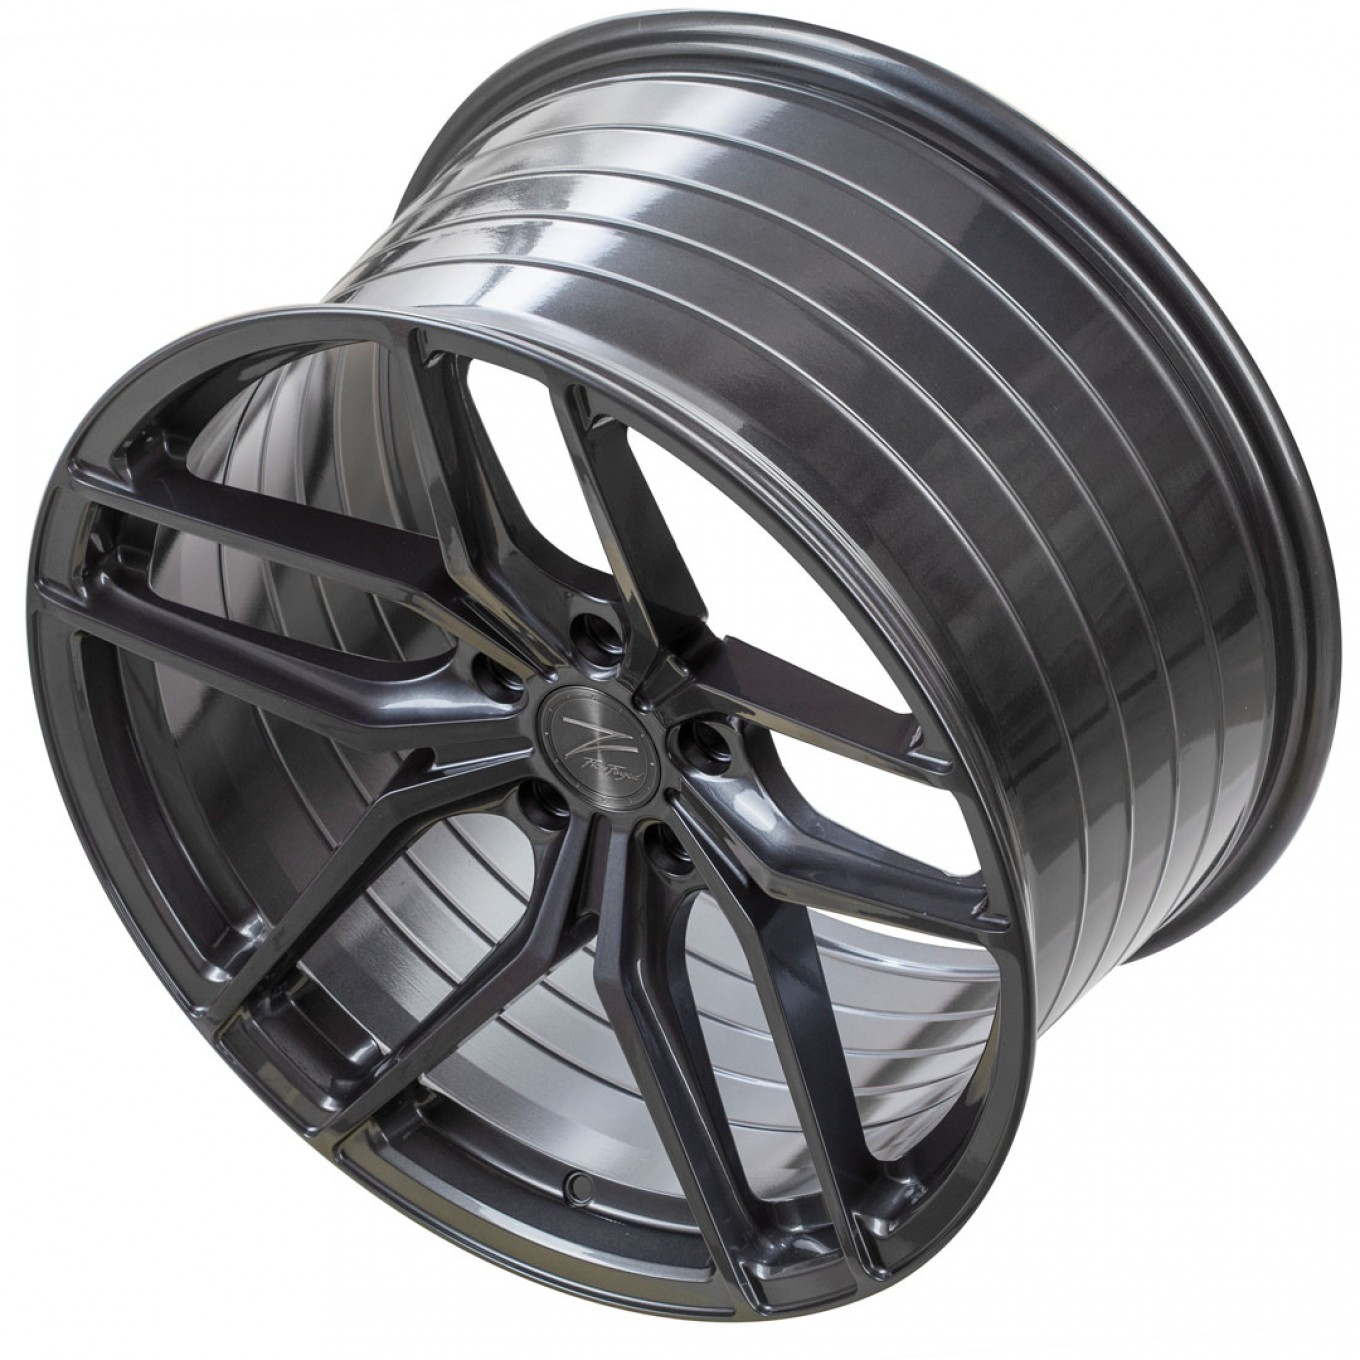 ZP2.1 Deep Concave FlowForged | Gloss Metal - Black Friday Price